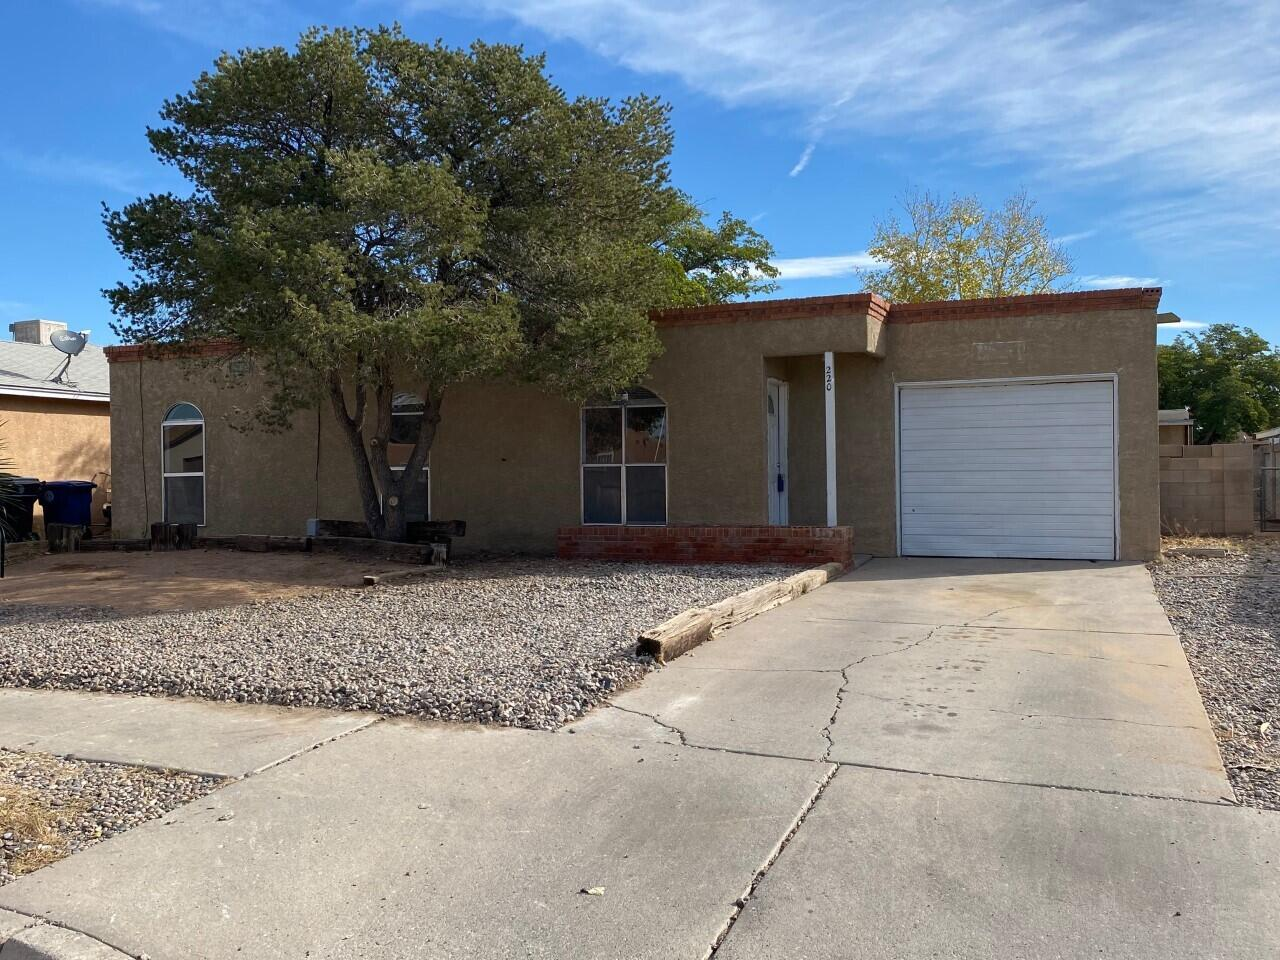 Nice 3 bedroom, 1.5 bath home located in the Southwest Heights area.  Property is fenced all around. Inspections are complete. Come take a look and make this home yours today!